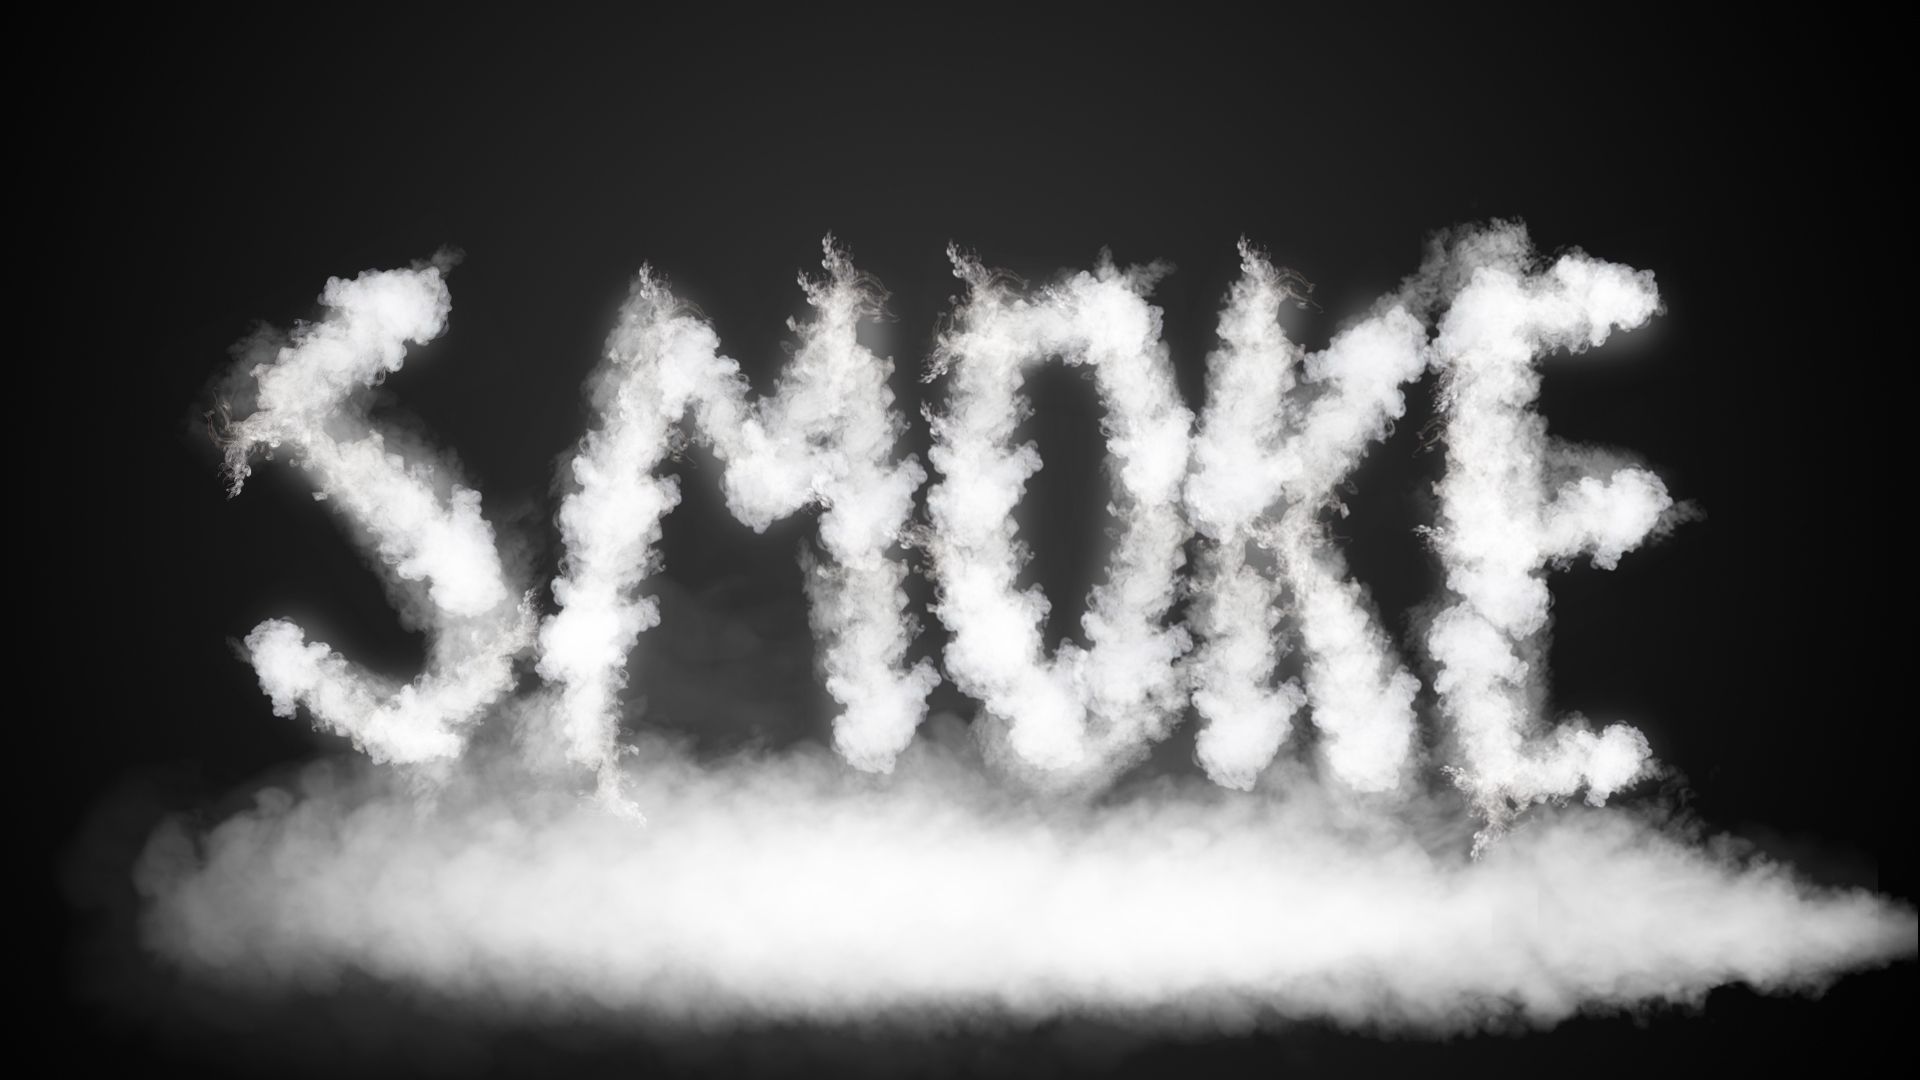 How to create smoke text effect in photoshop photoshop tutorials how to create smoke text effect in photoshop baditri Gallery